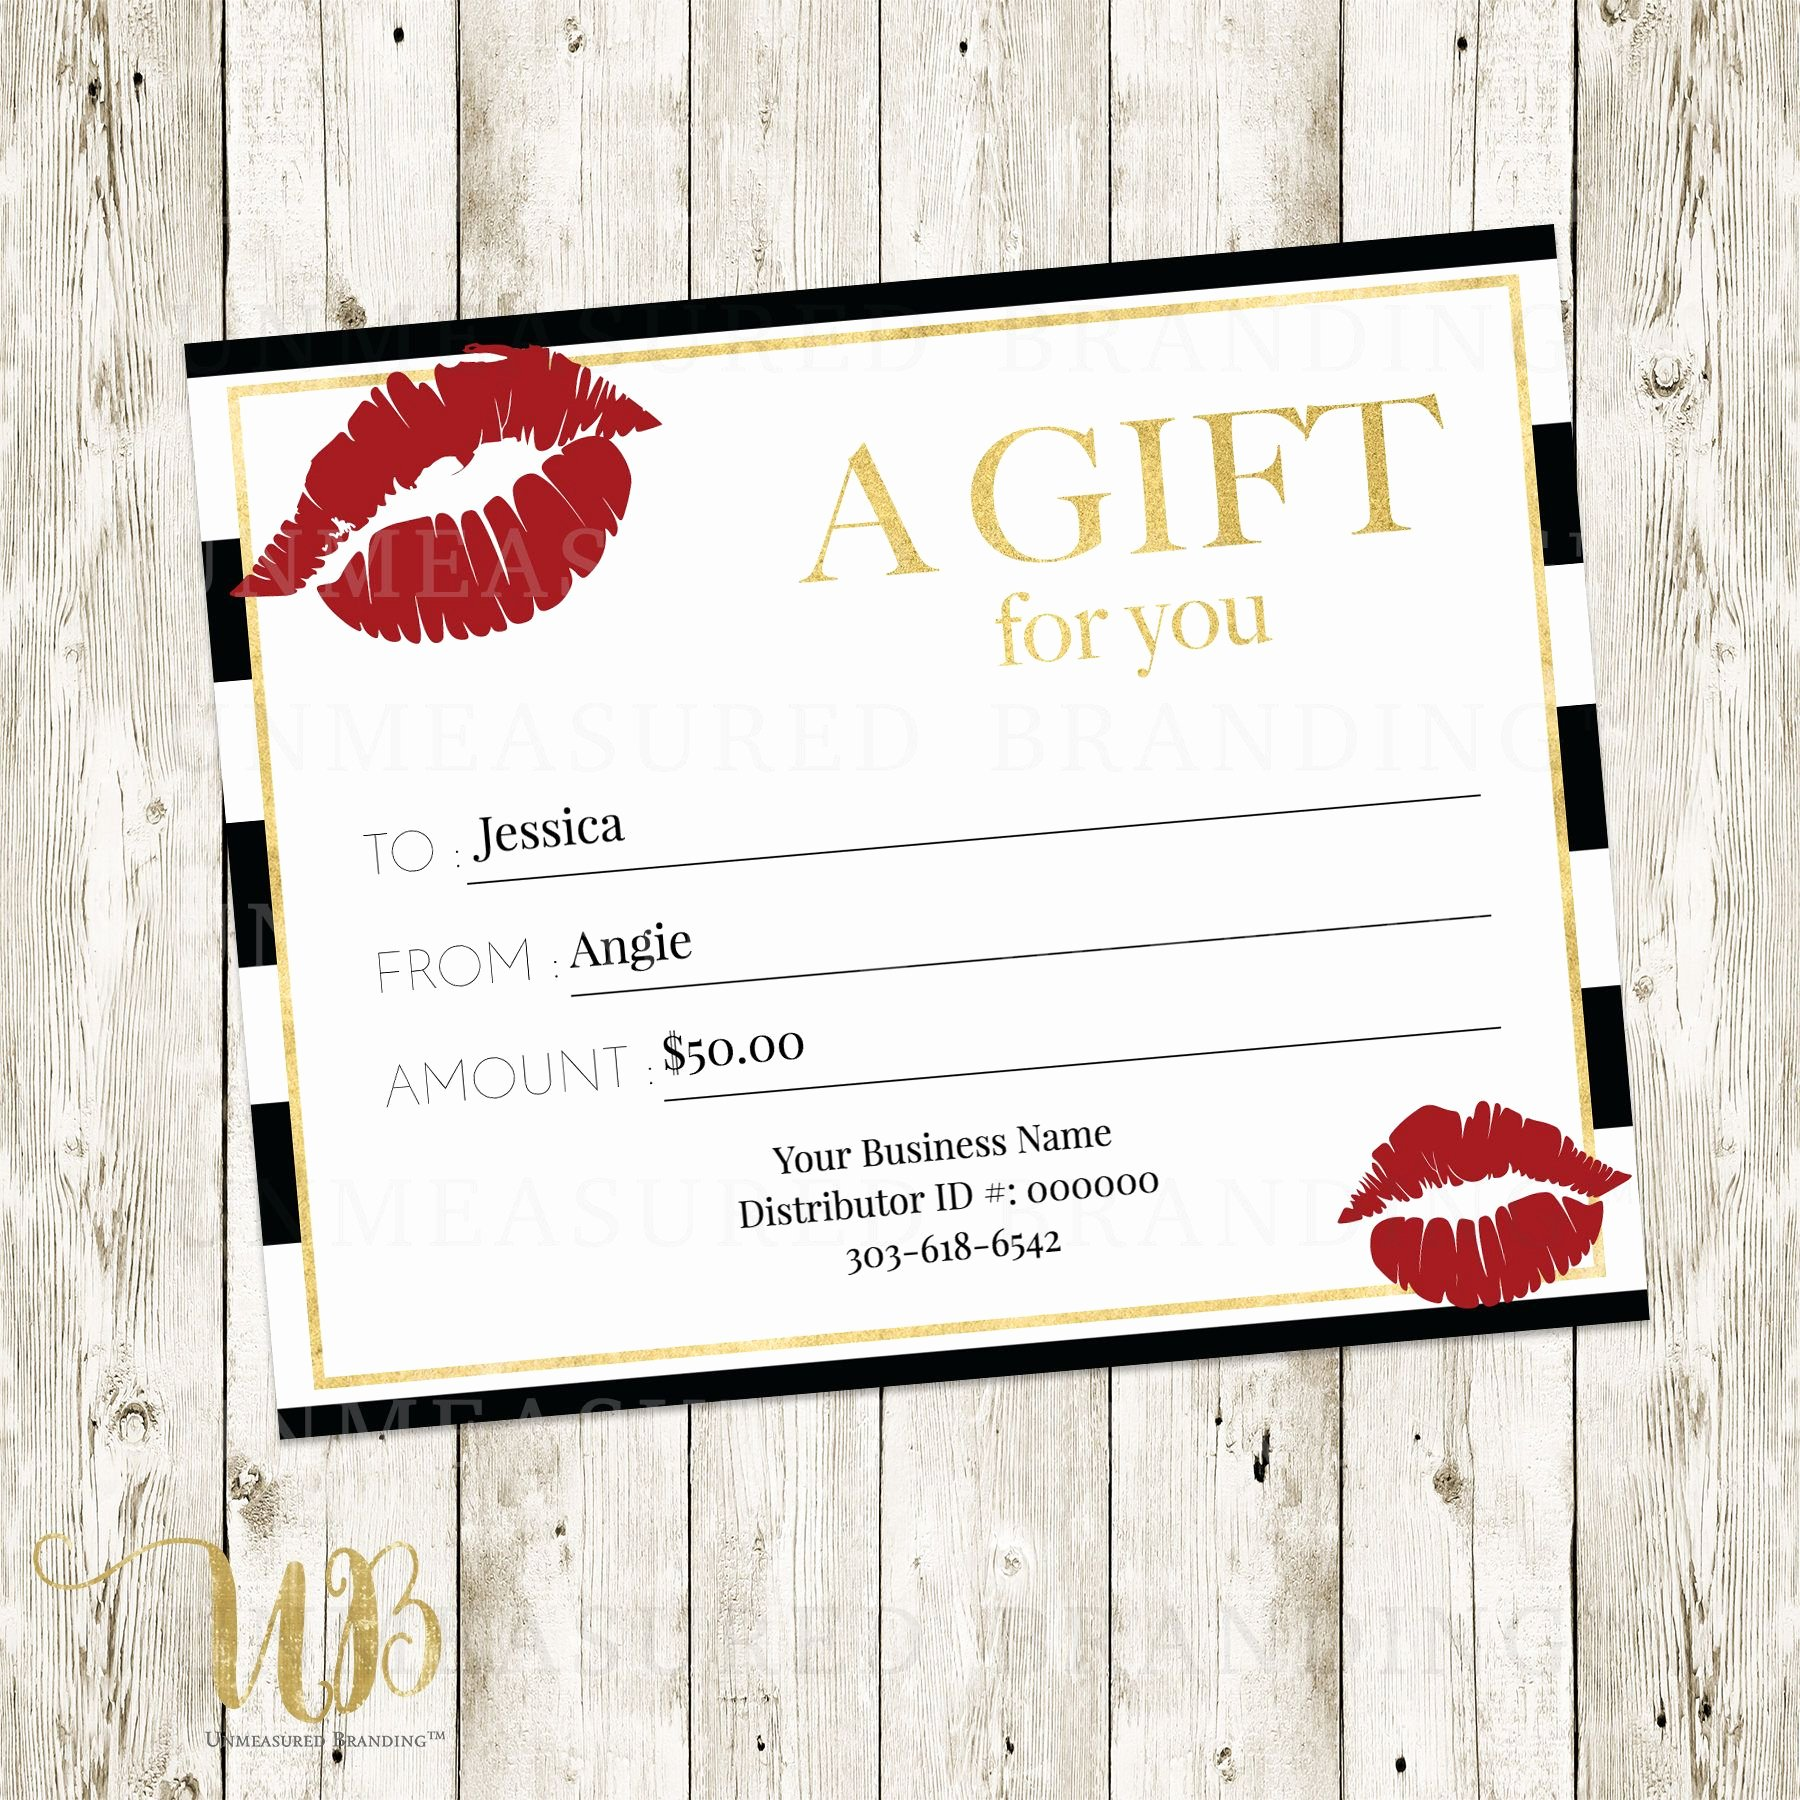 Free Avon Gift Certificate Template New Lipsense Gift Certificate Templat Avon